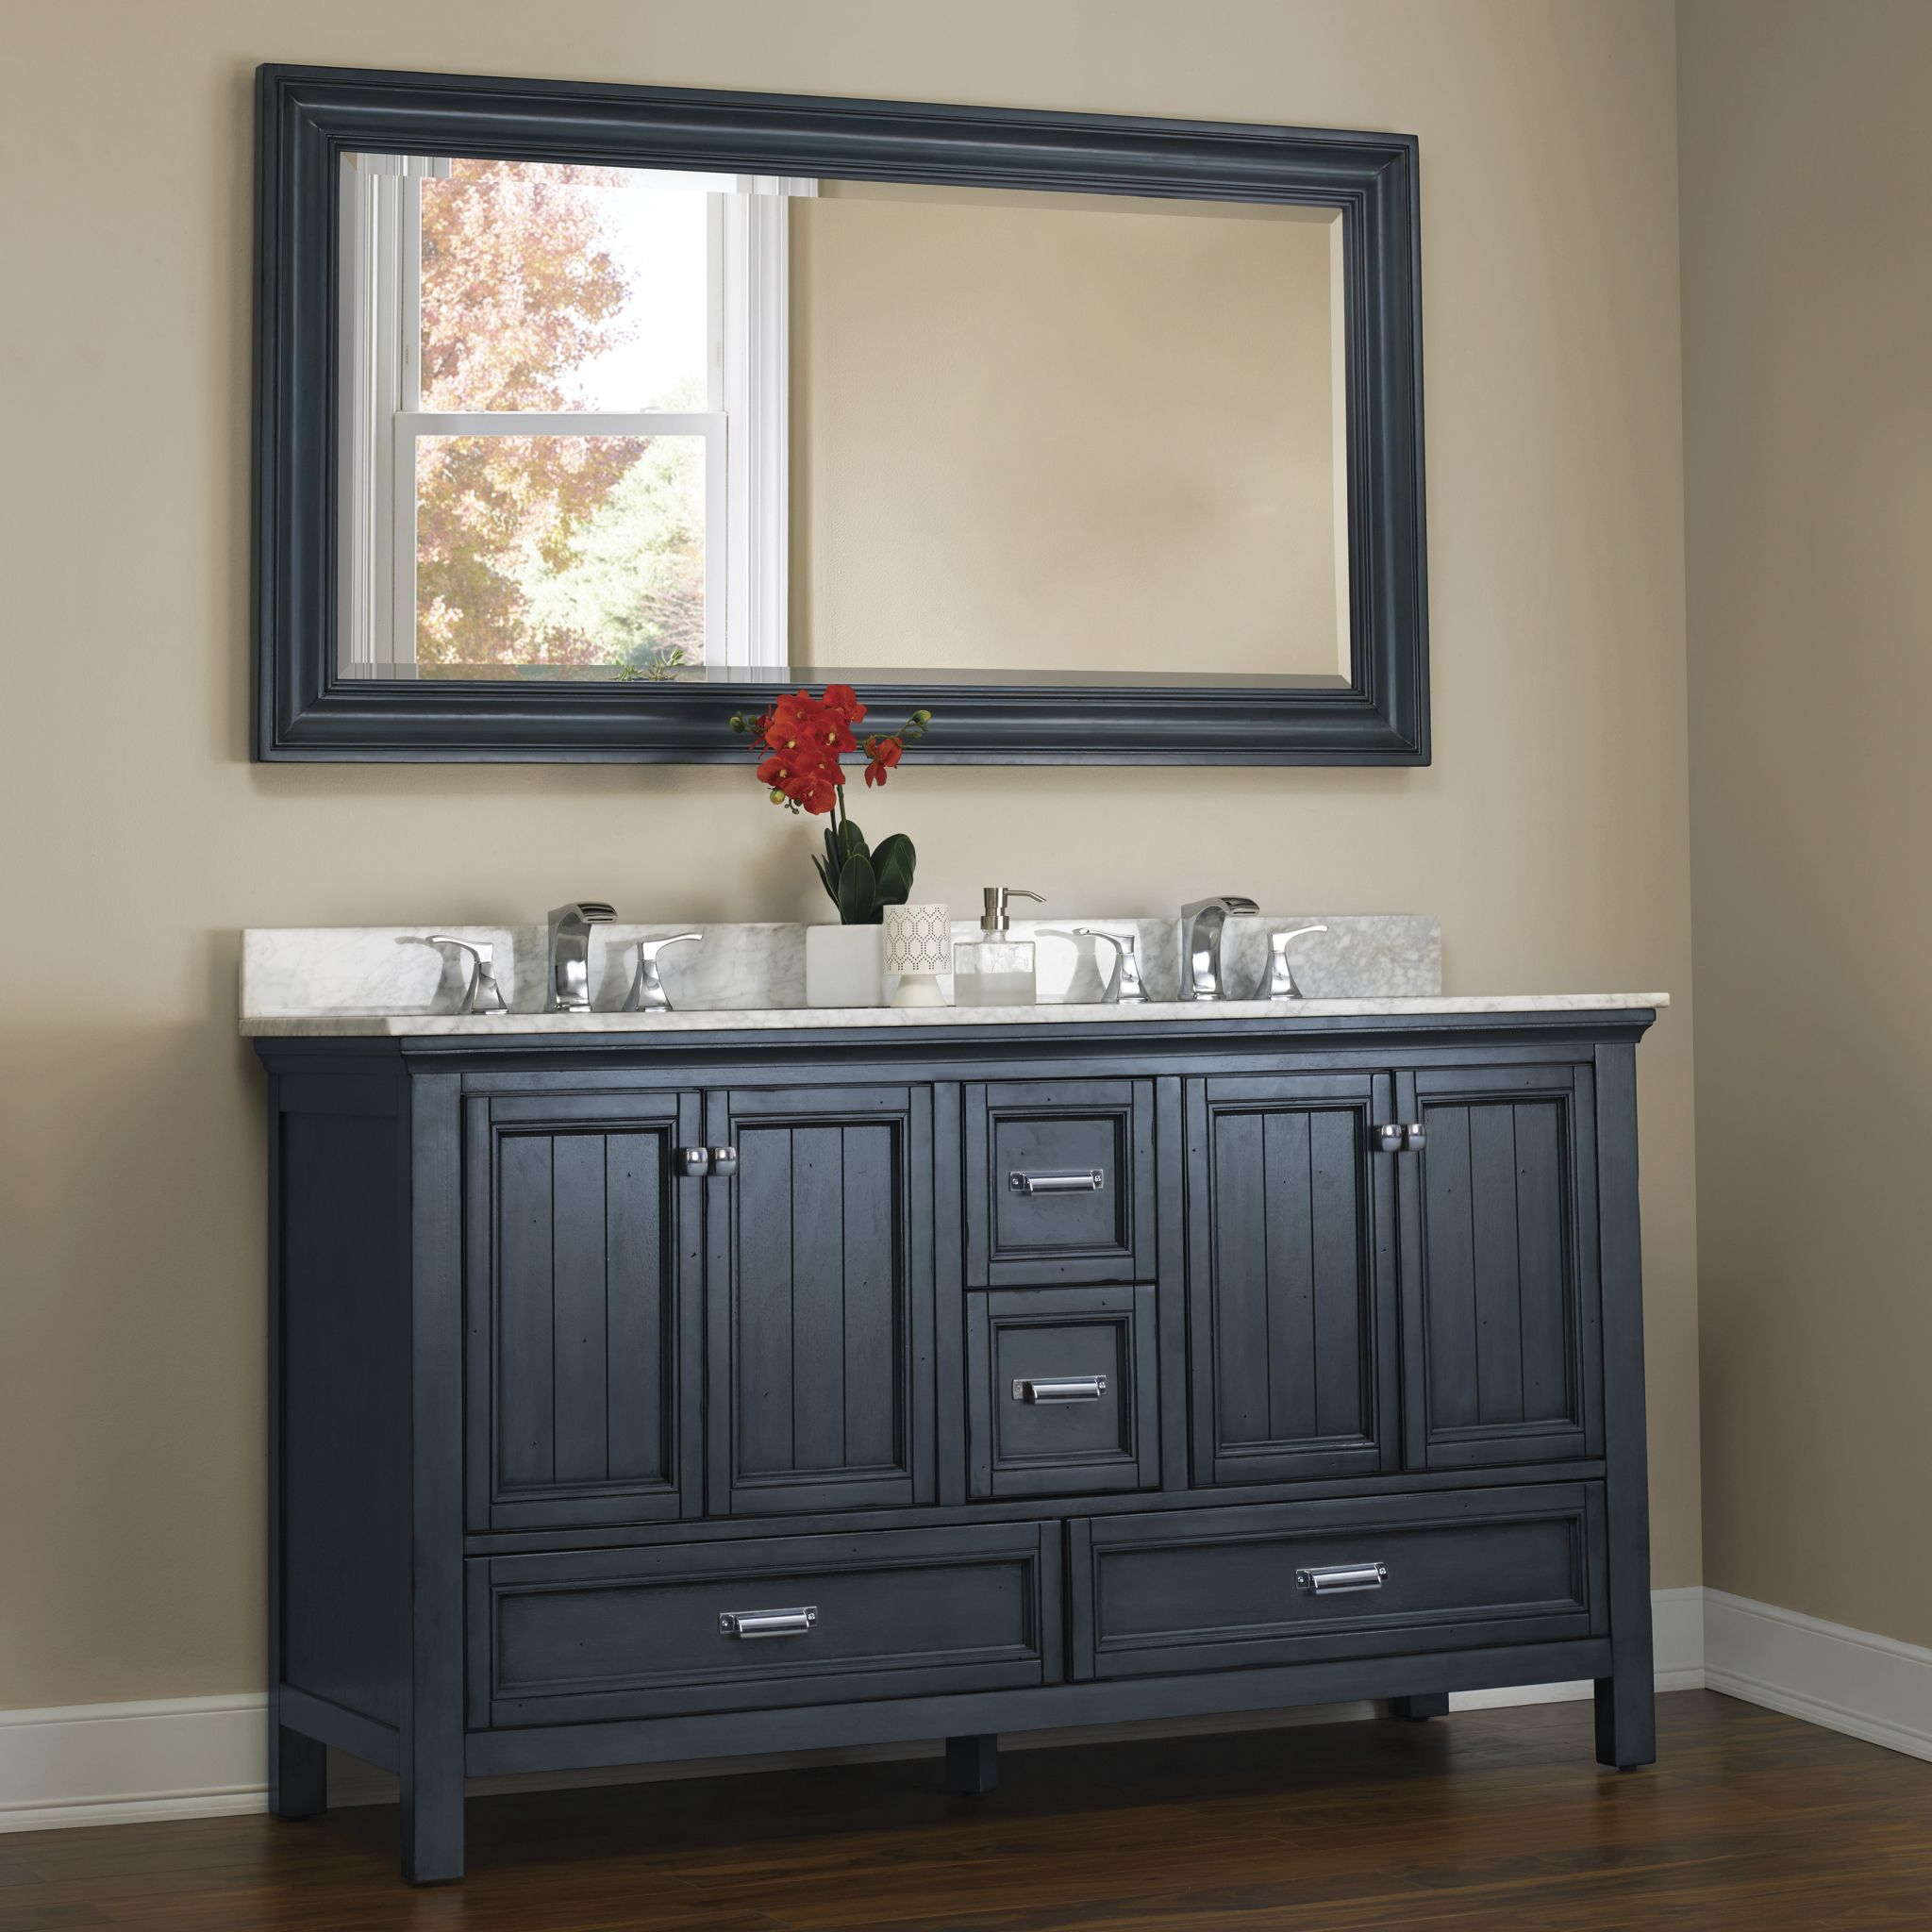 Foremost Brantley Cabinet In Harbor Blue Vanity Farmhouse Mirrors Apartment Bedroom Decor